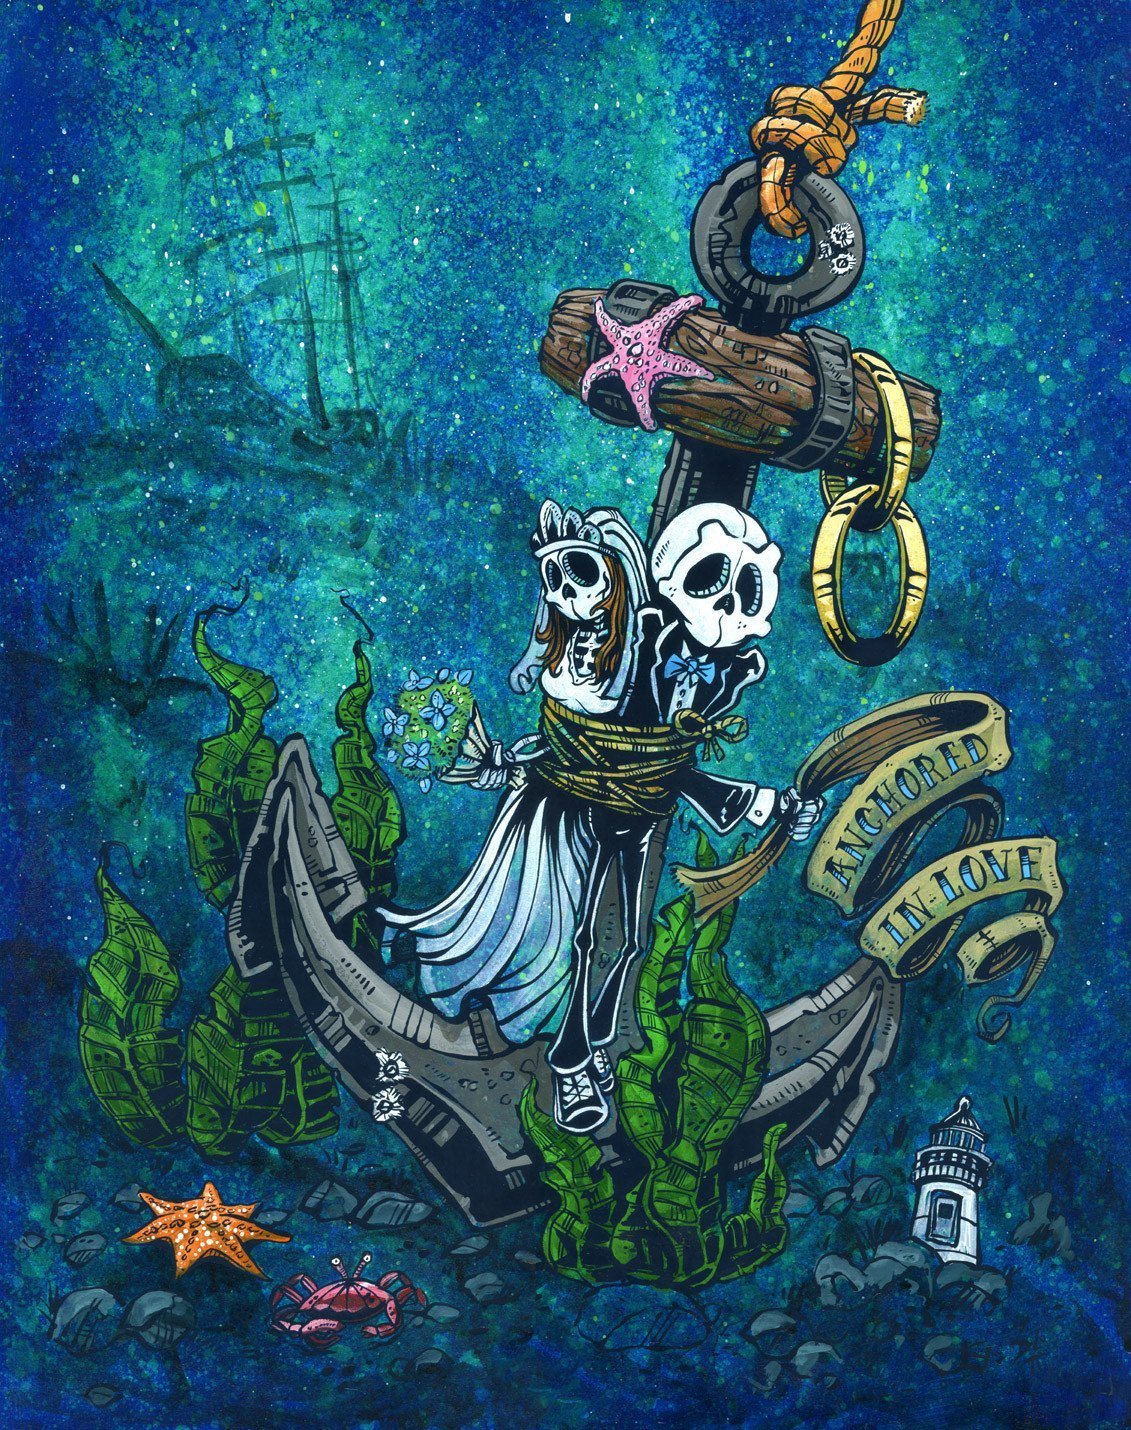 Anchored in Love by Day of the Dead Artist David Lozeau, Dia de los Muertos, Muertos, Sugar Skull